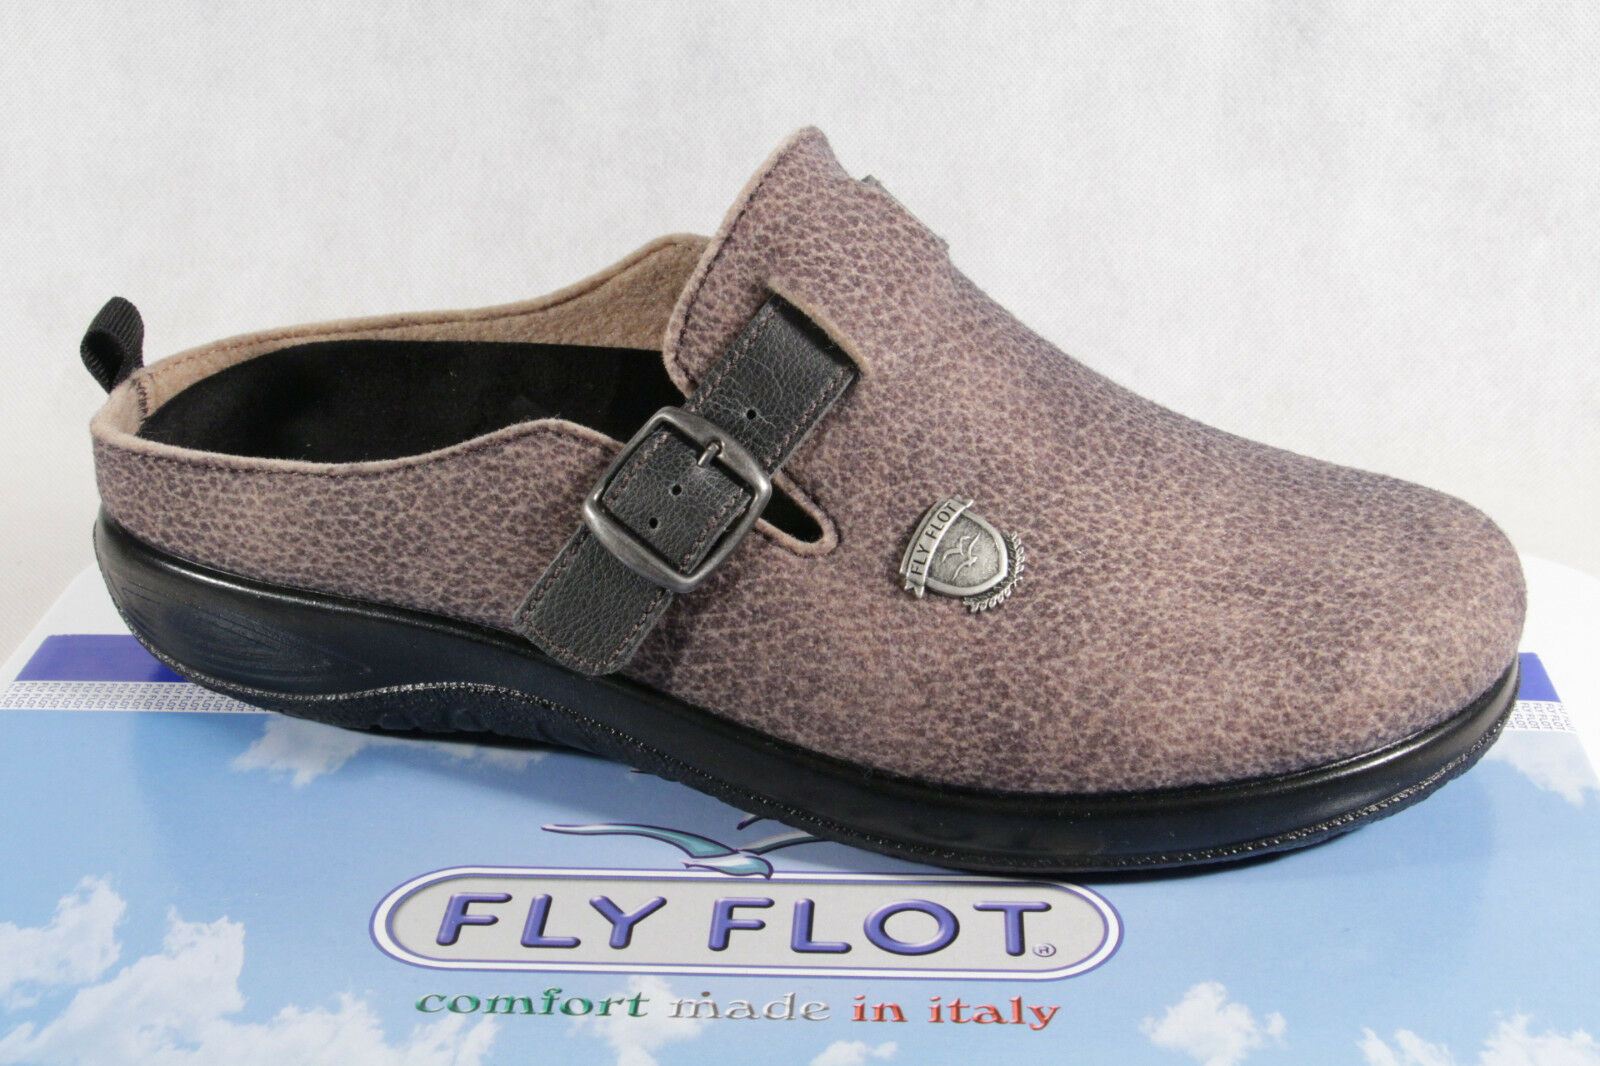 Fly Fly Fly Flot Men's Slippers, filzoptik, Brown, removable footbed NEW e99429